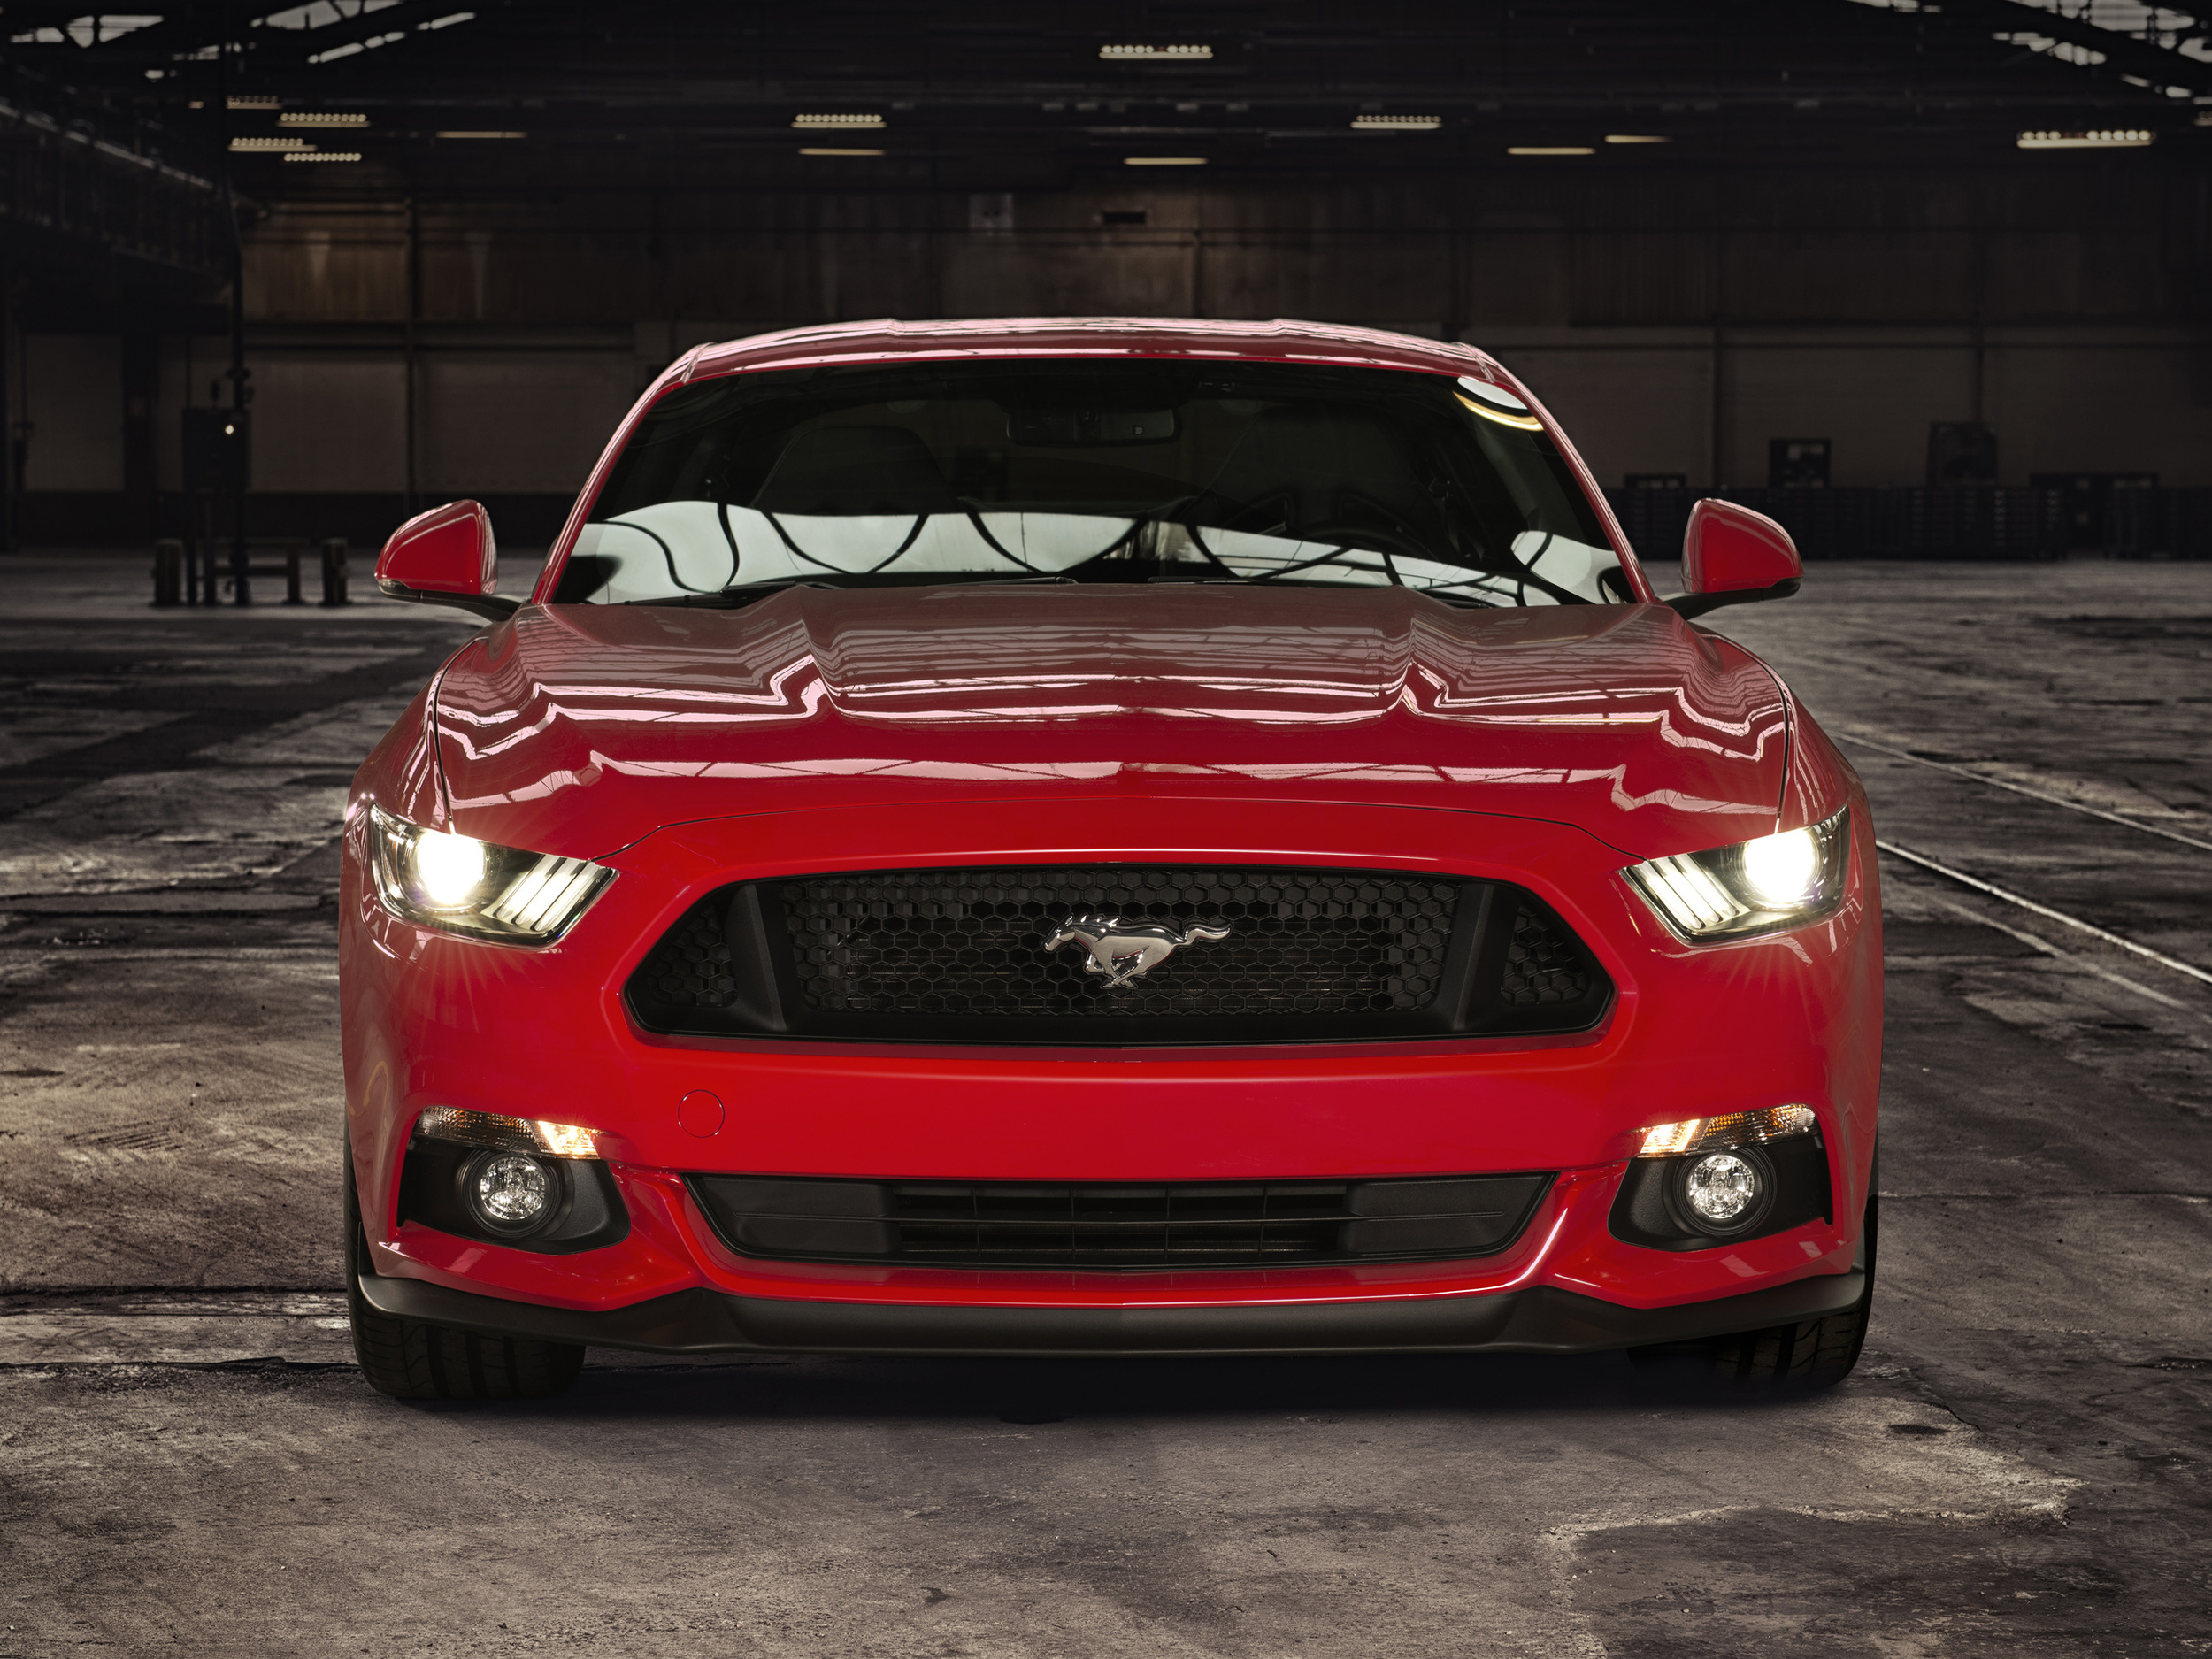 Ford Mustang adopts world-first knee airbag